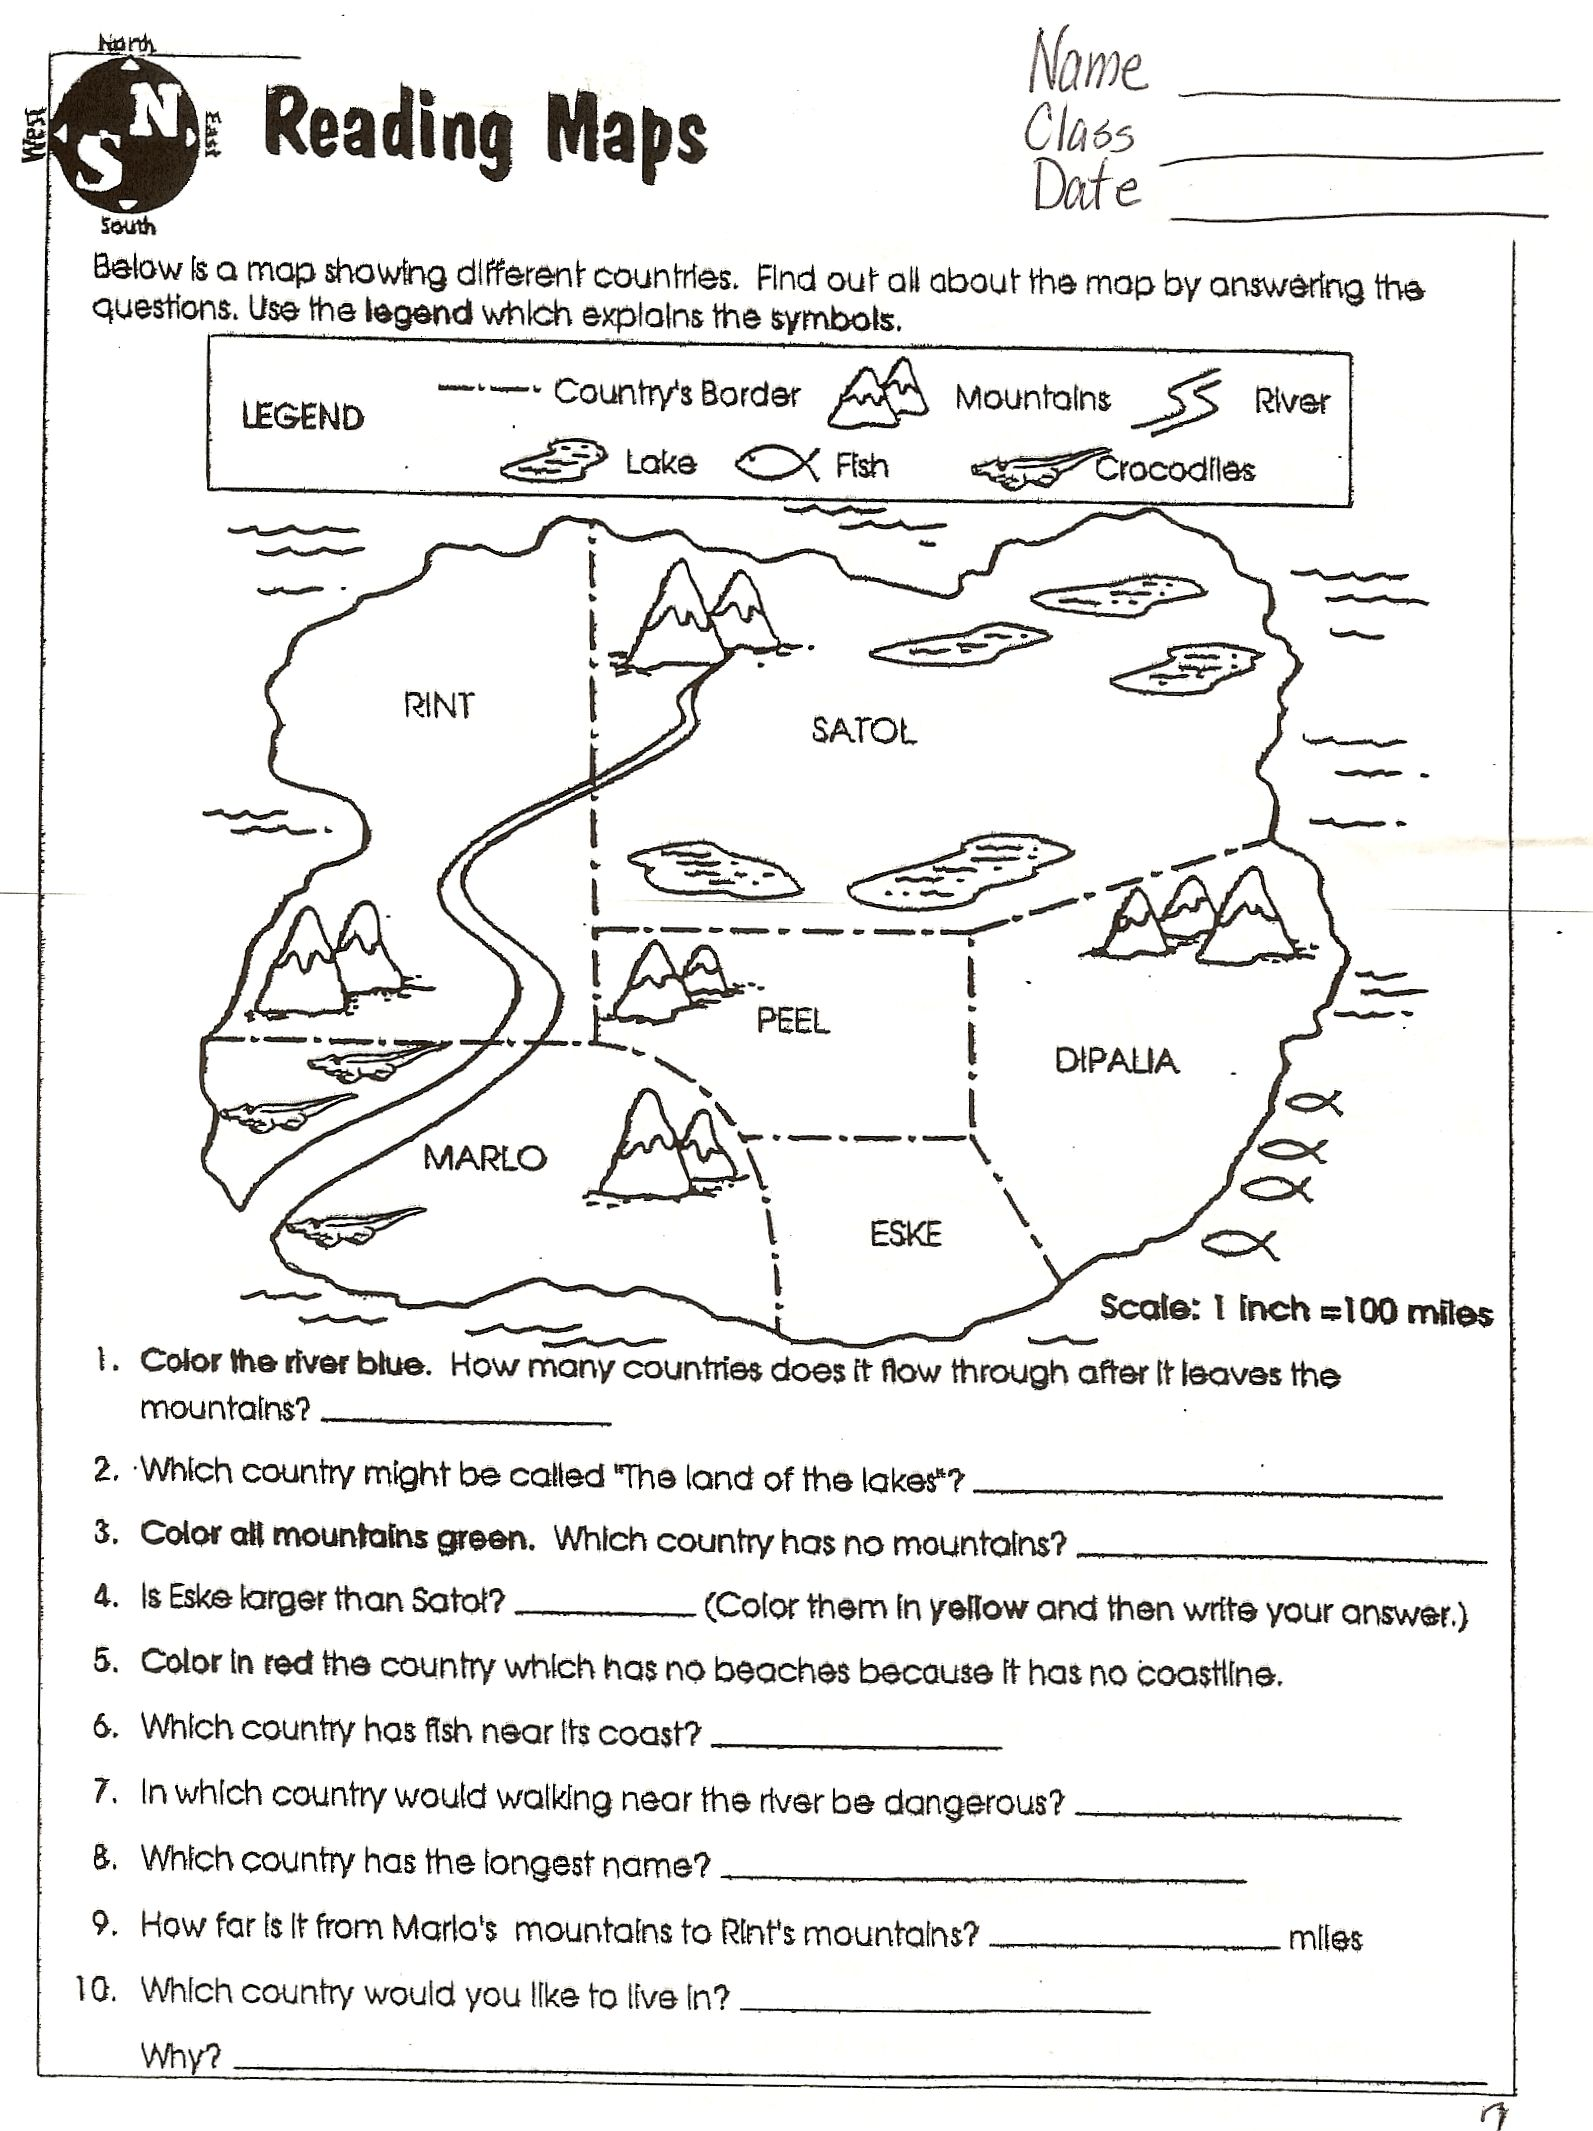 worksheet 2nd Grade History Worksheets 10 best images about history lessons on pinterest coloring sheets reading skills and history